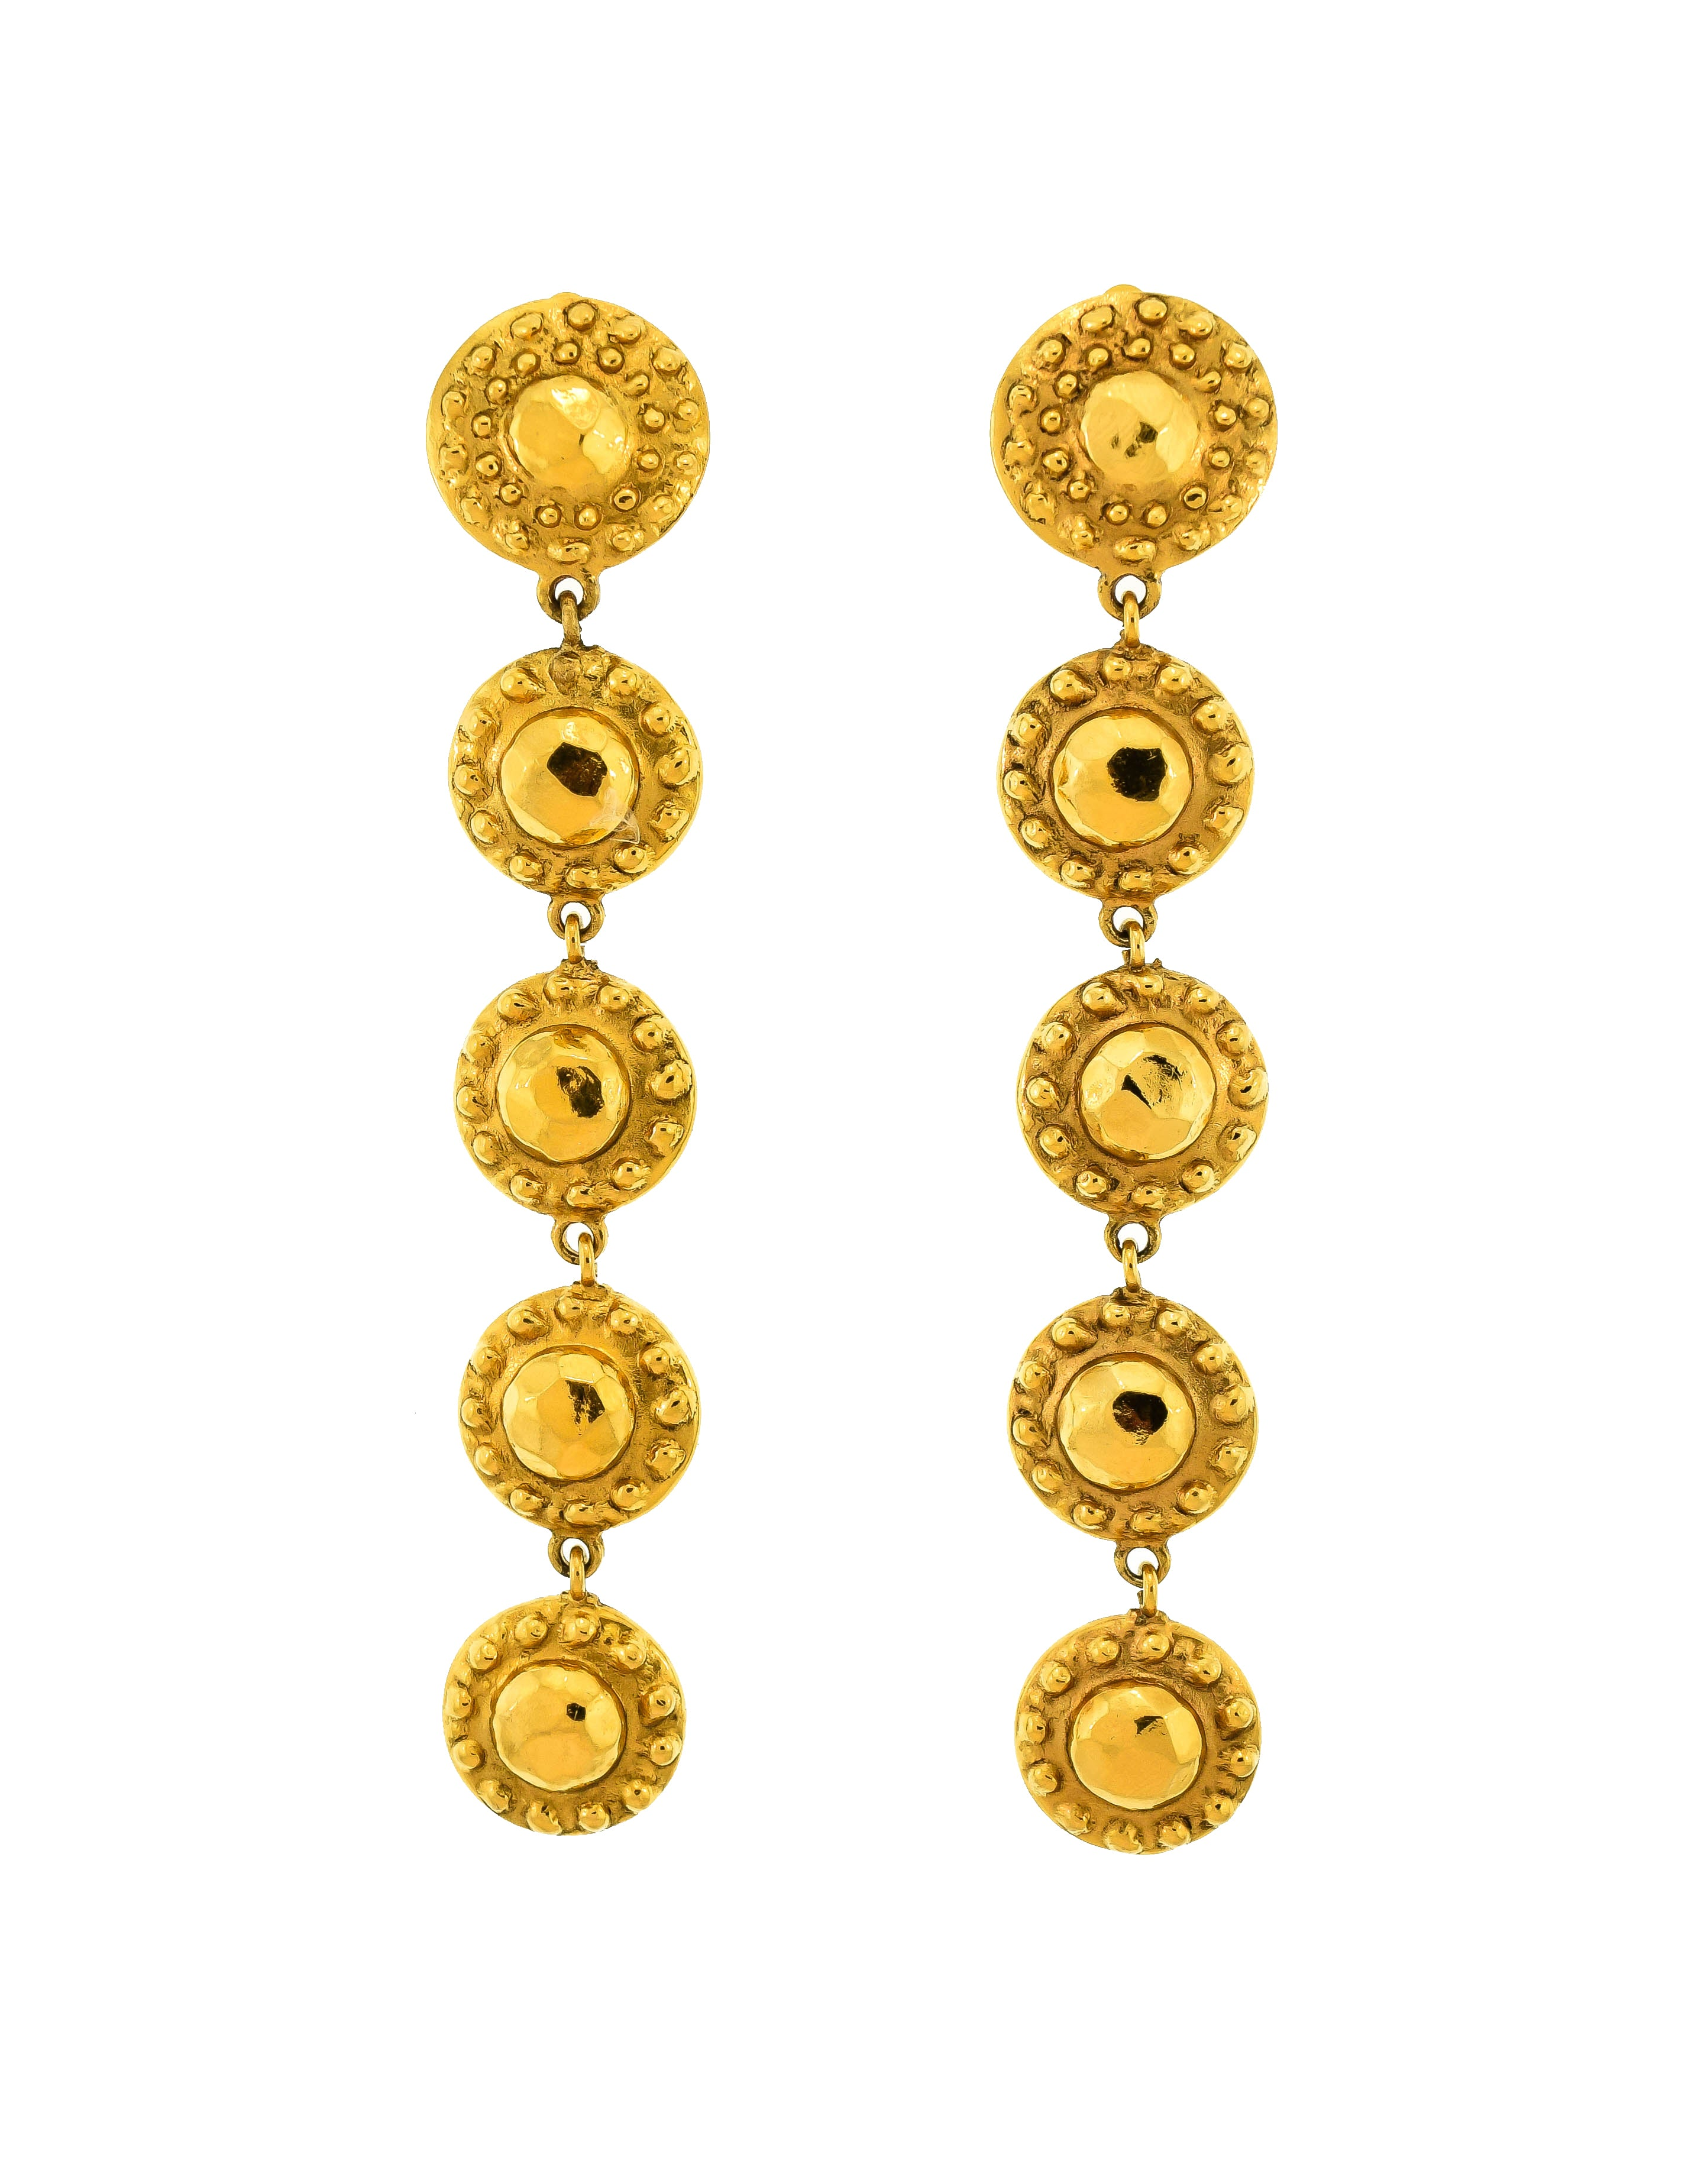 Chanel Vintage Gold Hammered Circle Dangle Earrings